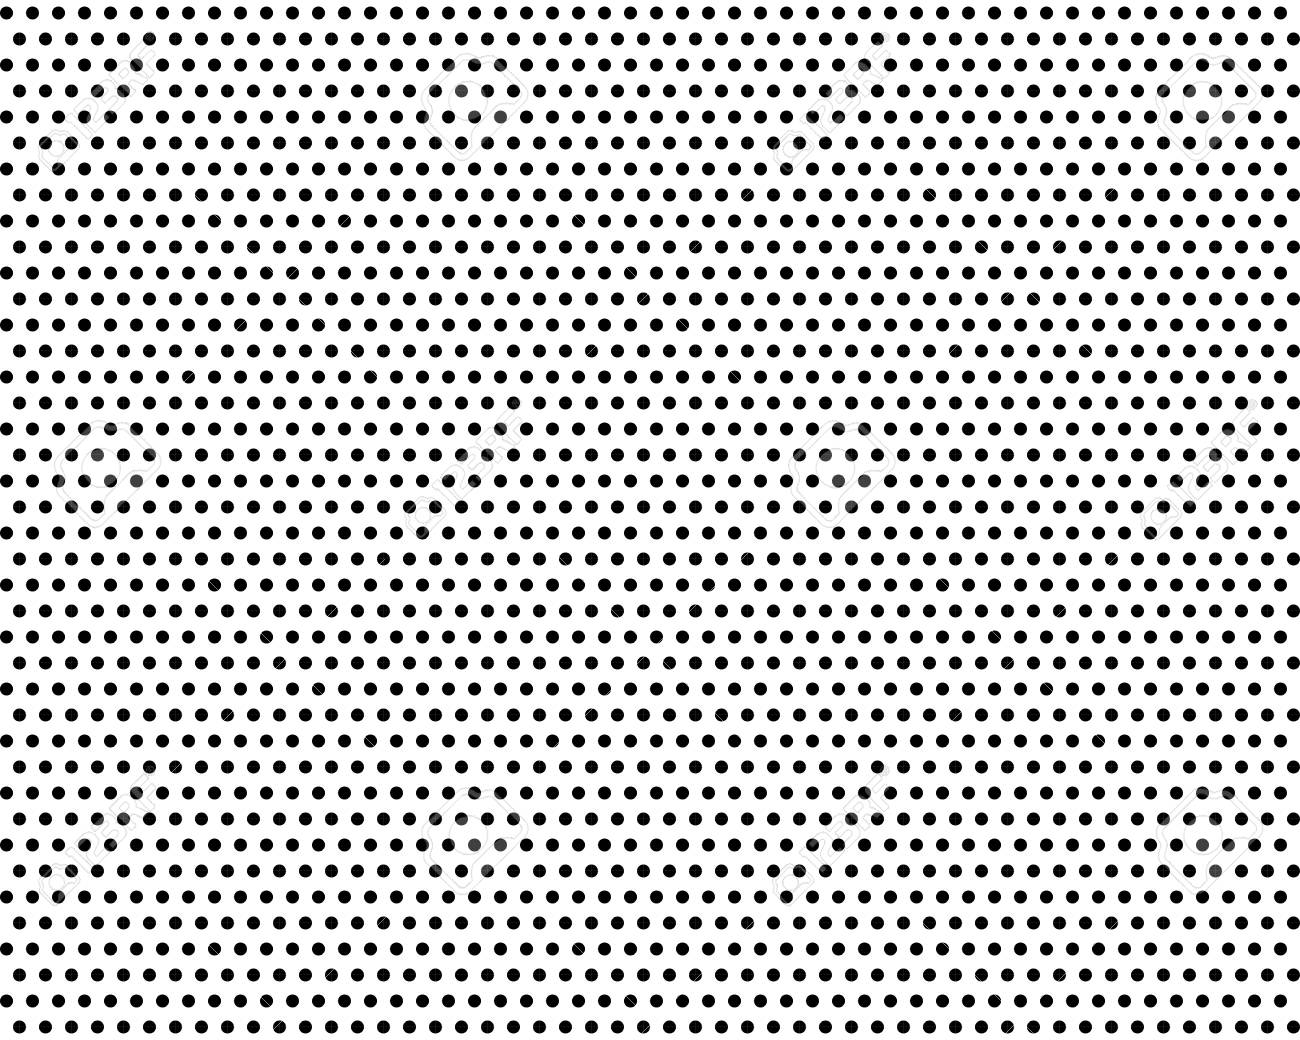 Abstract Black Spot On White Background Simple Illustration 1300x1040